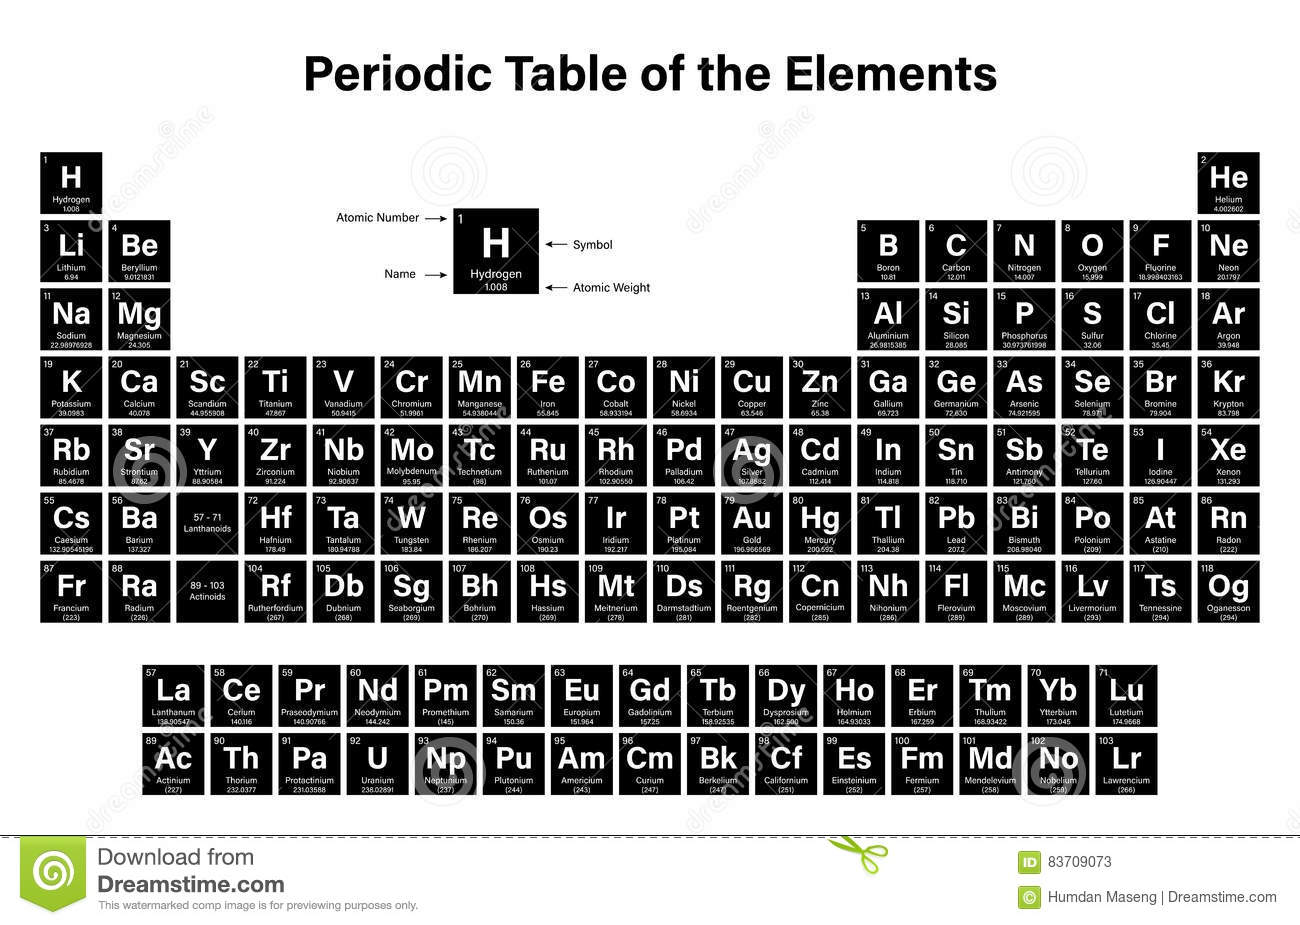 Magnesium cartoons illustrations vector stock images 399 pictures to download from - Periodic table of elements html ...